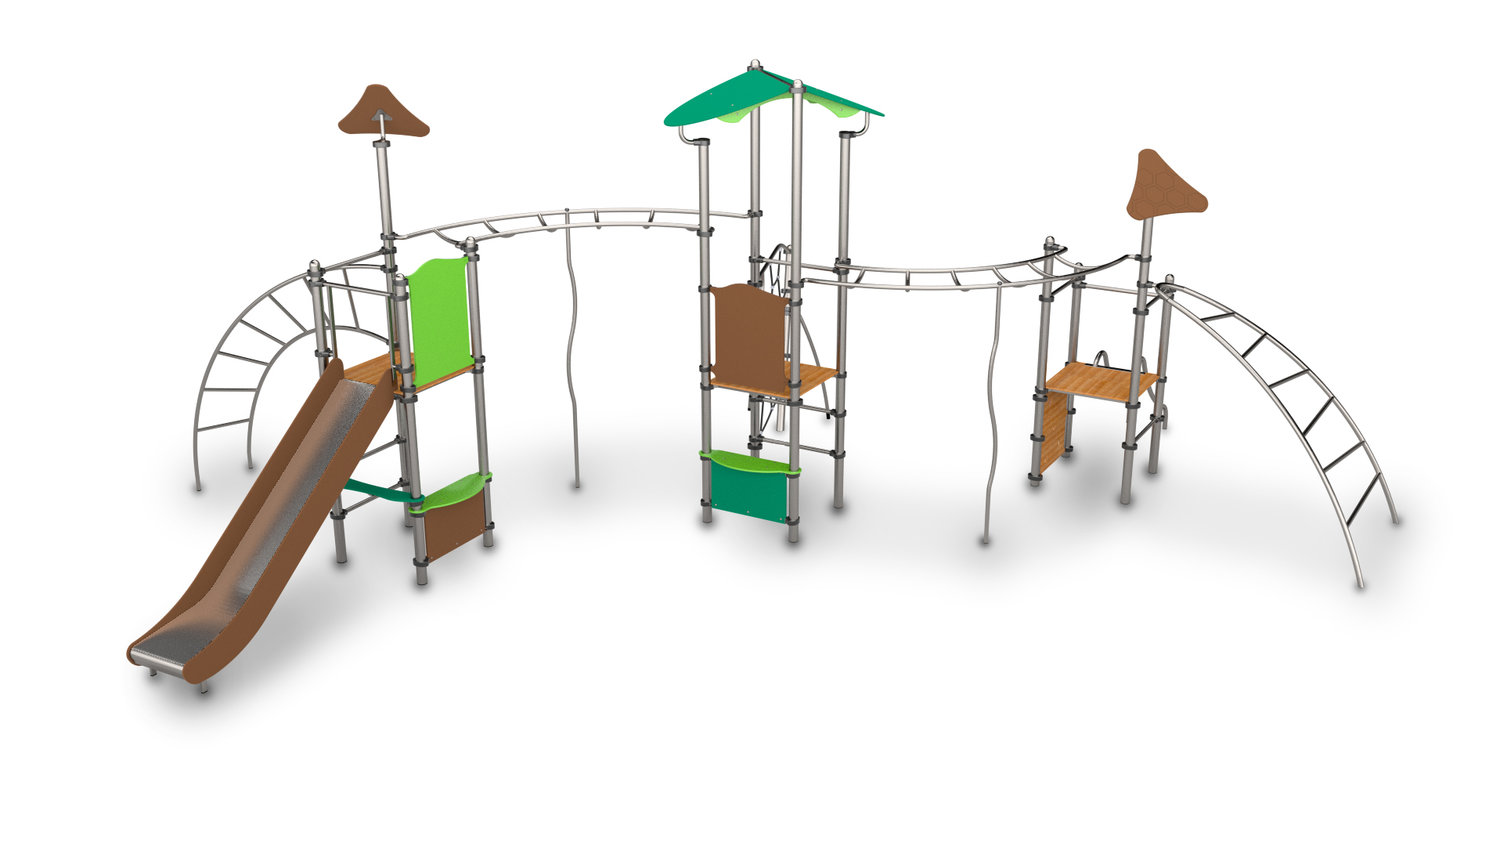 Climbing frame with poles and slides